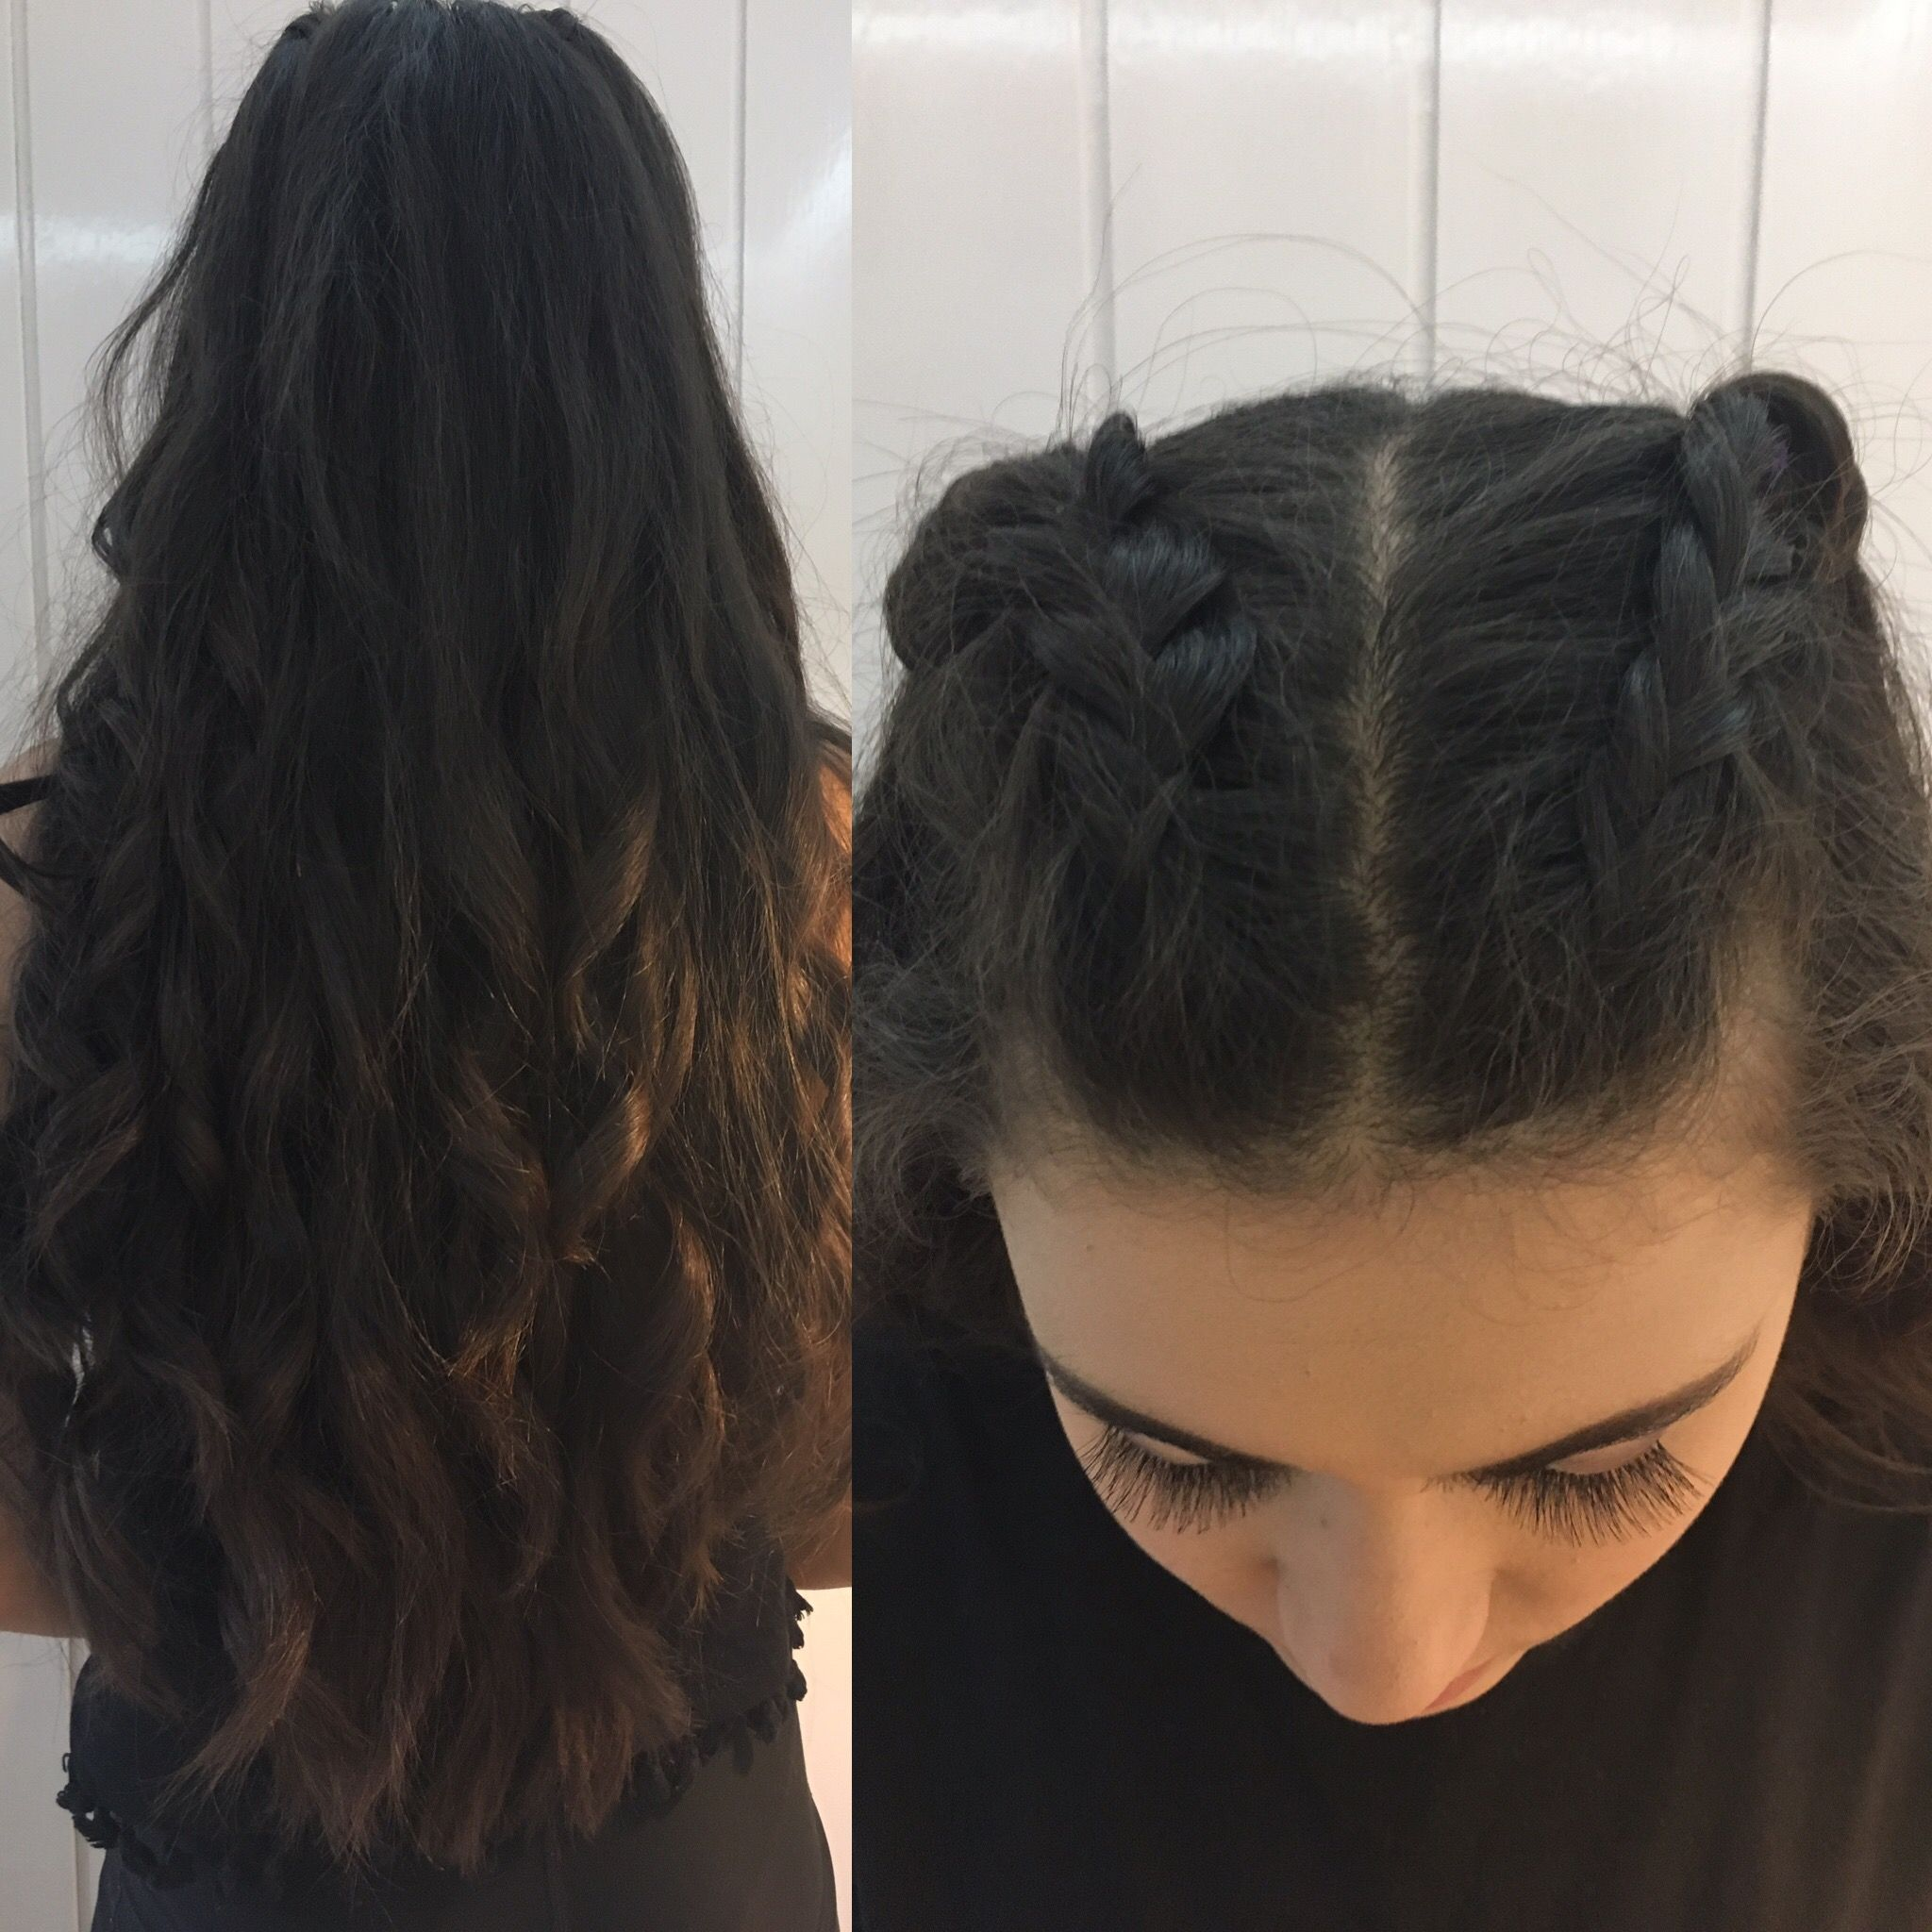 Prom Hair Two French Braids Only Done Half Way And Then The Rest Is Down And Curled Prom Hair Promh Two French Braids Debs Hairstyles Two Braid Hairstyles